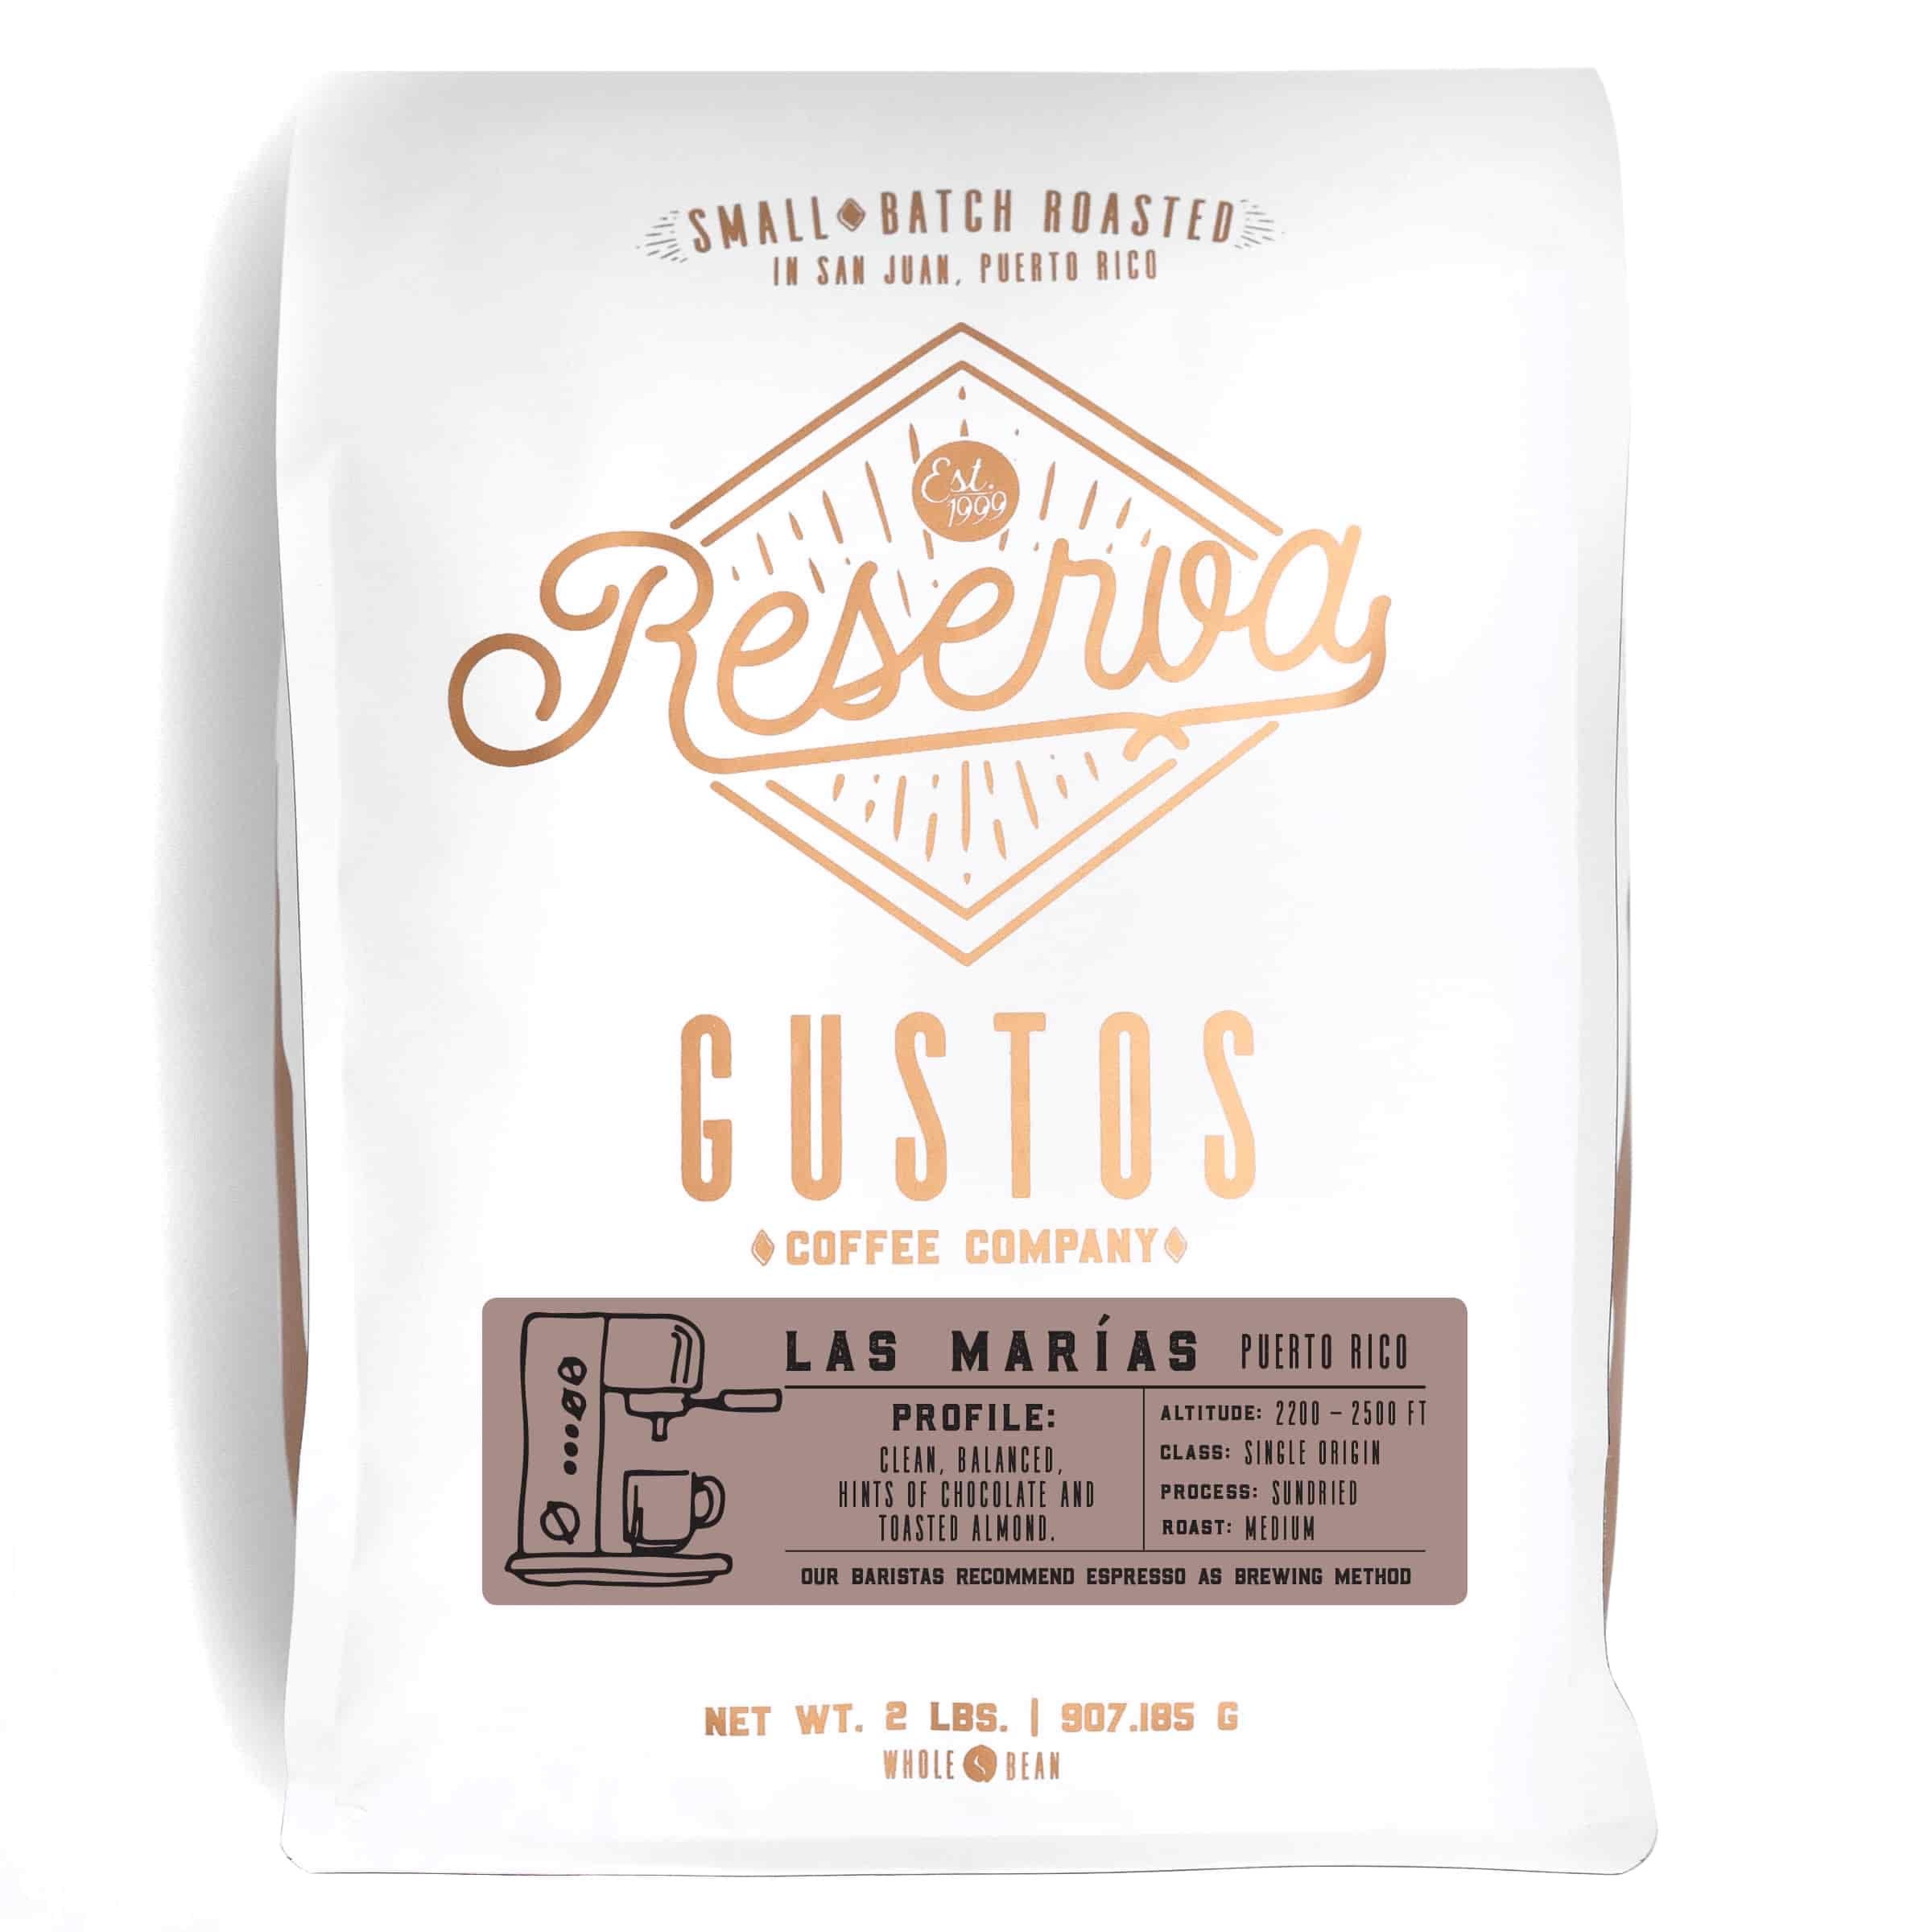 A 2lb bag of Specialty Coffee from Las Marias PR by Gustos Coffee Co